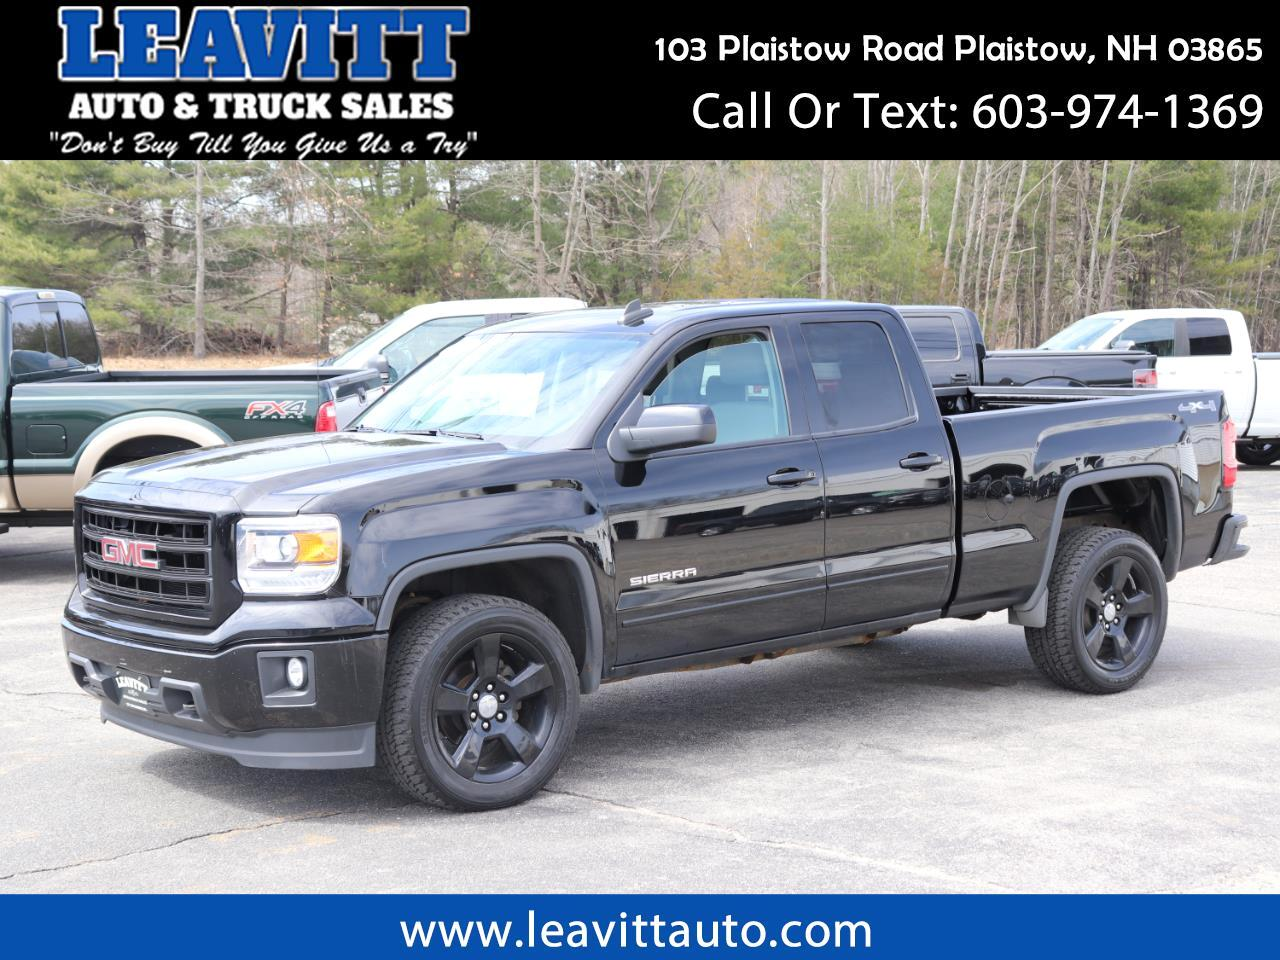 2015 GMC Sierra 1500 ELEVATION 54K MILES